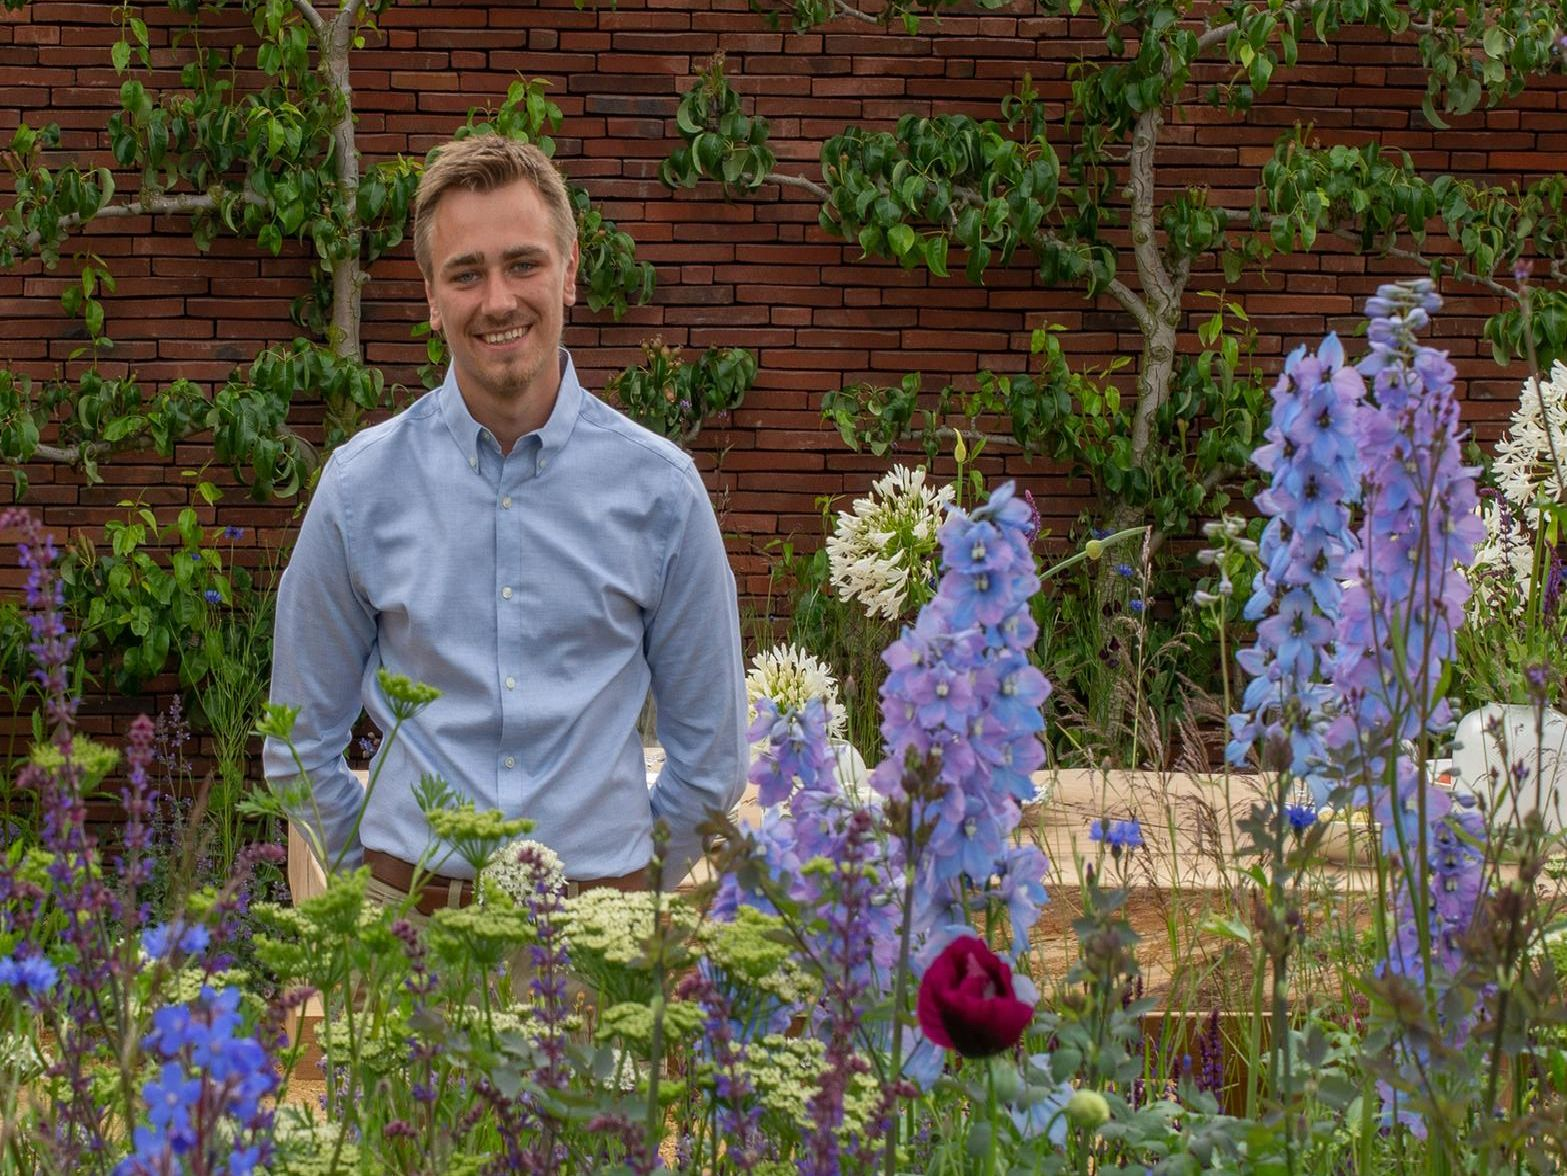 Garden Designer Jamie Butterworth from Butterworth Horticulture